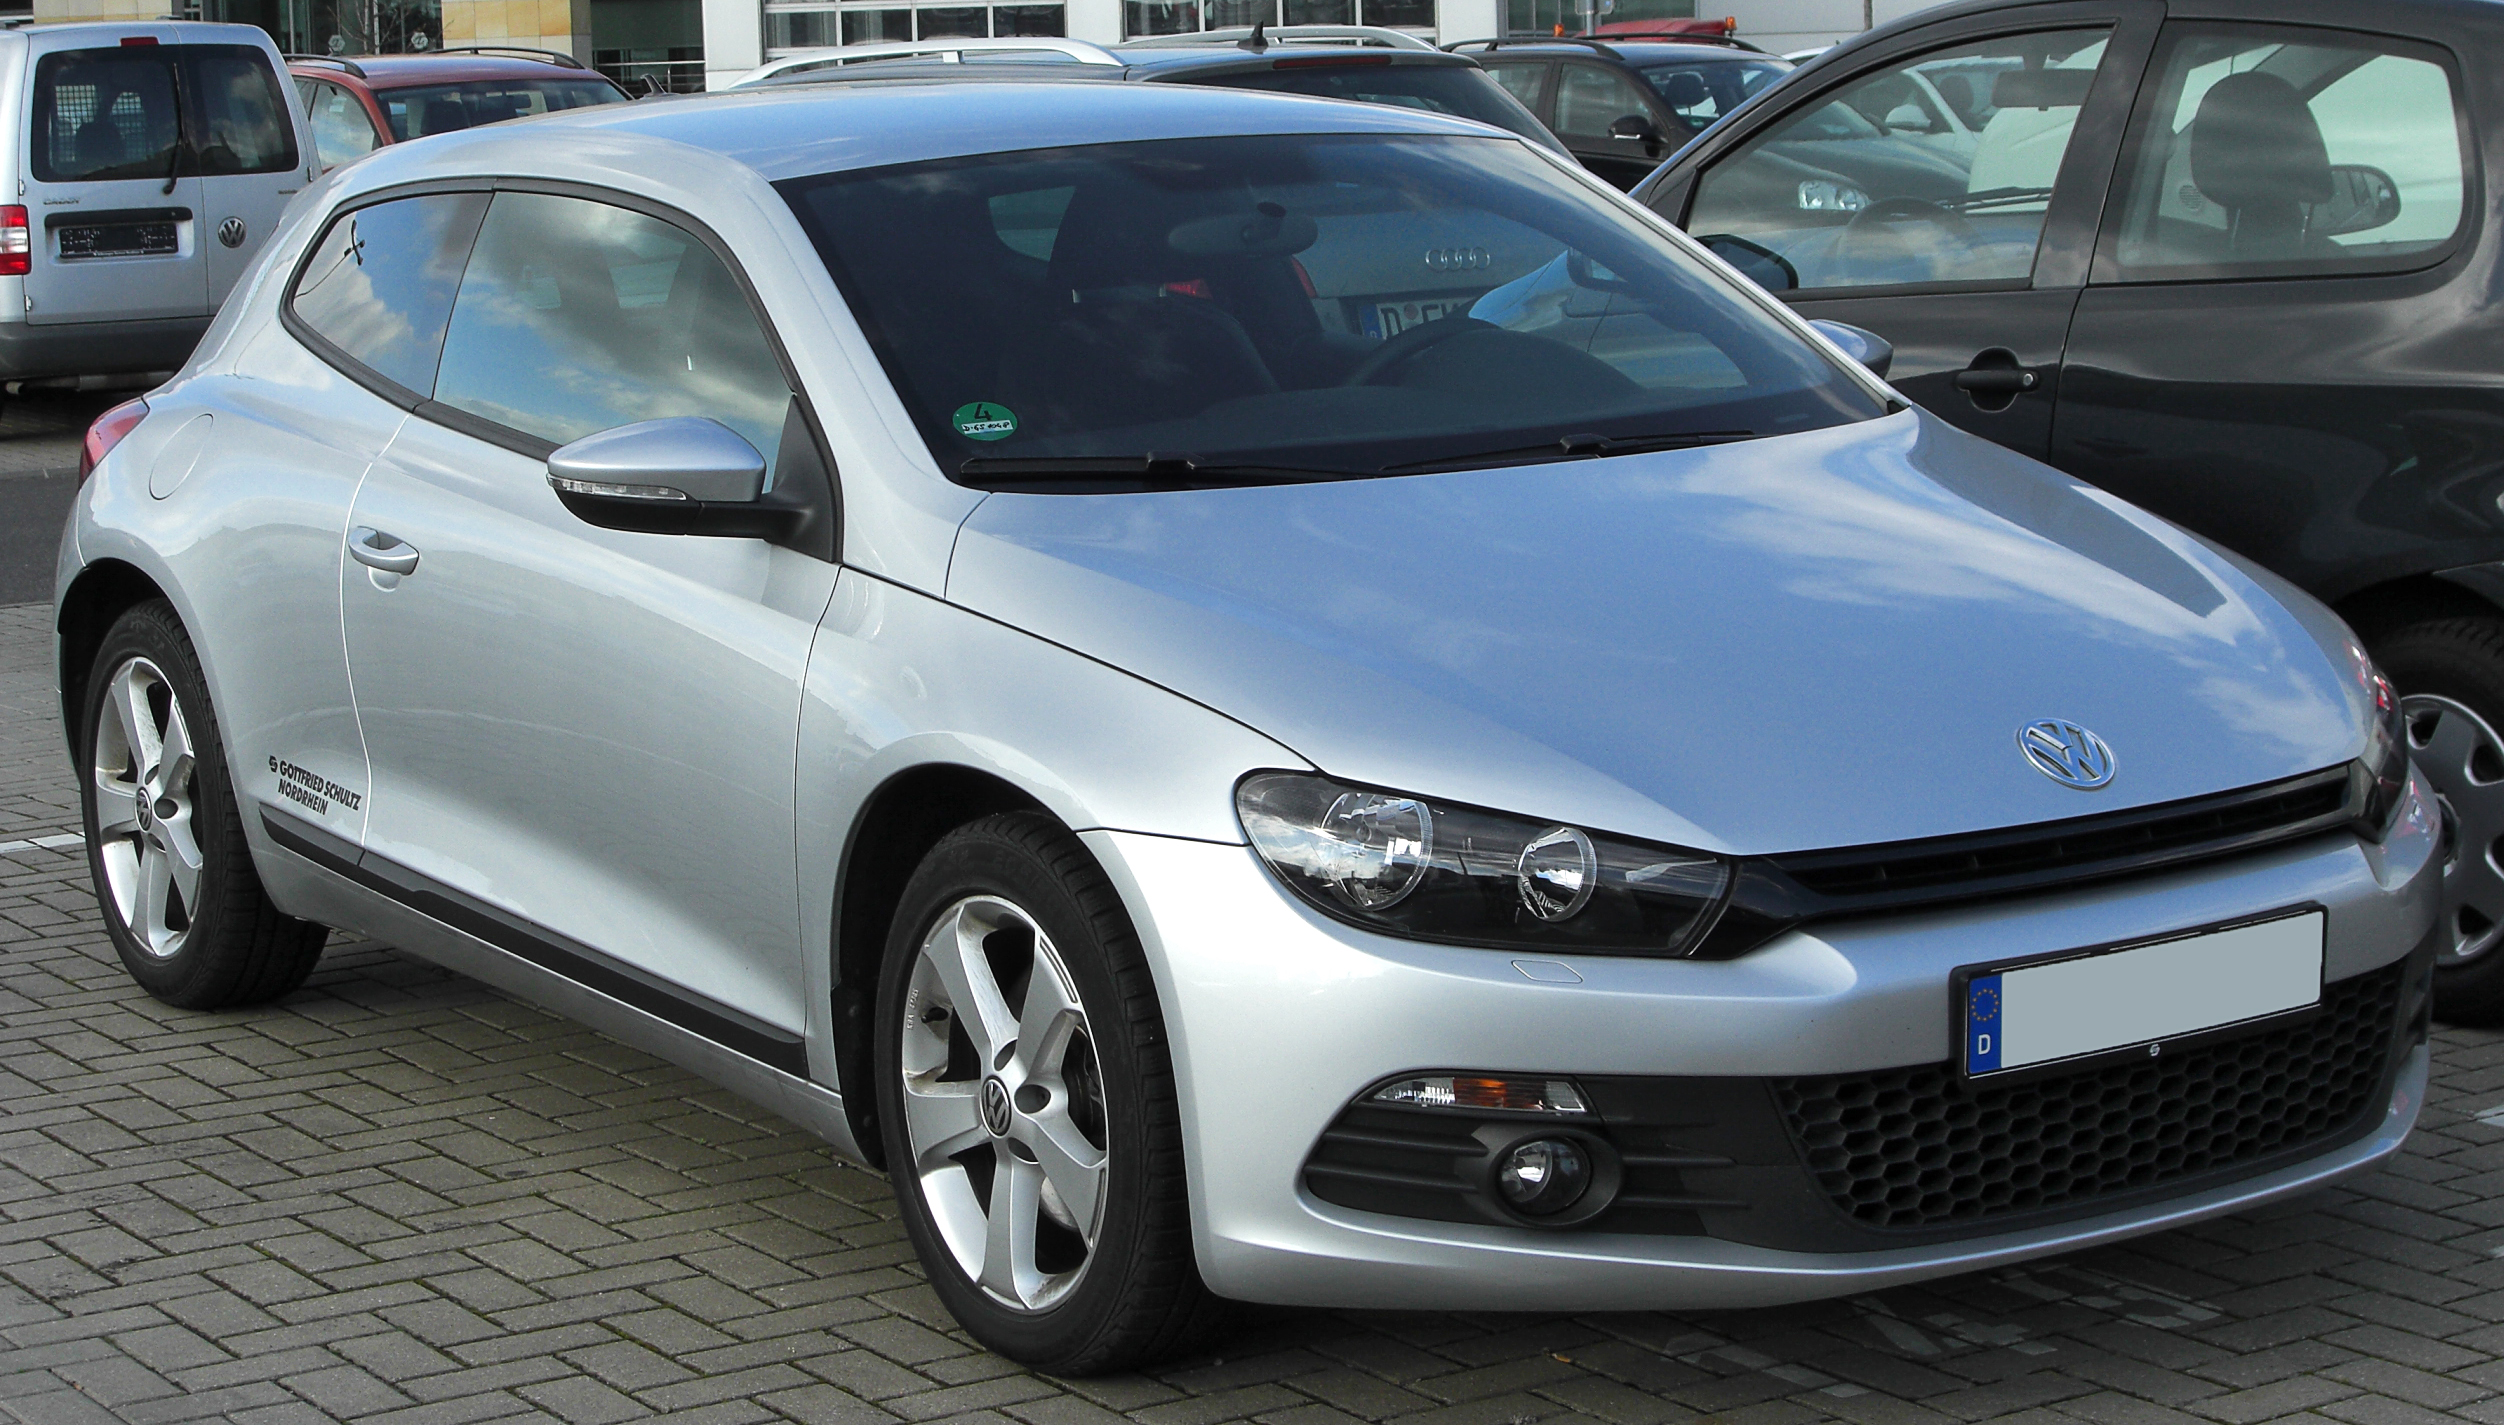 file vw scirocco iii 2 0 tsi front wikipedia. Black Bedroom Furniture Sets. Home Design Ideas